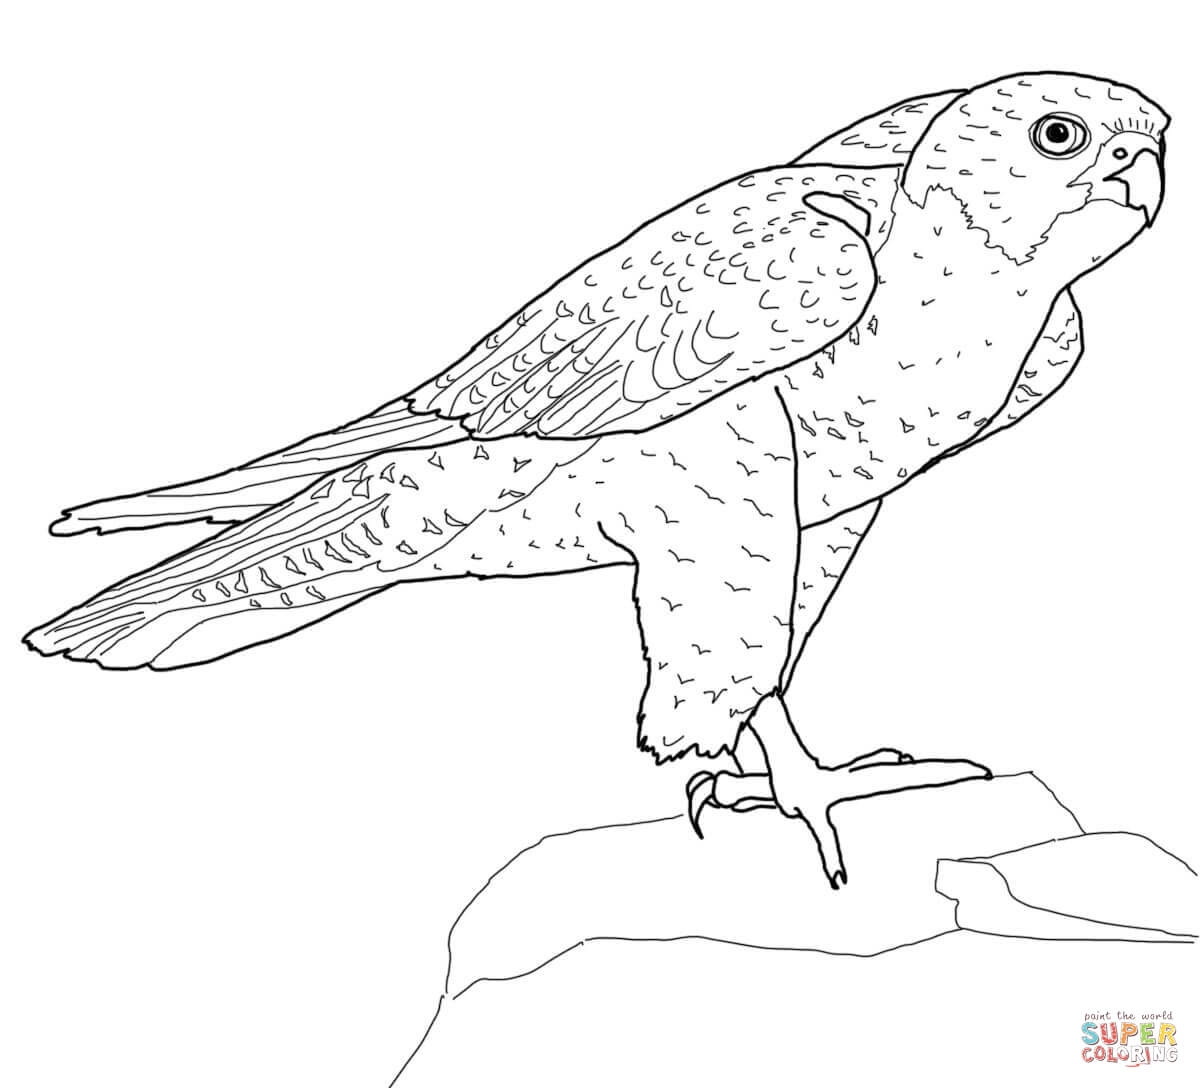 falcon coloring pages - f 16 falcon coloring sheets sketch templates